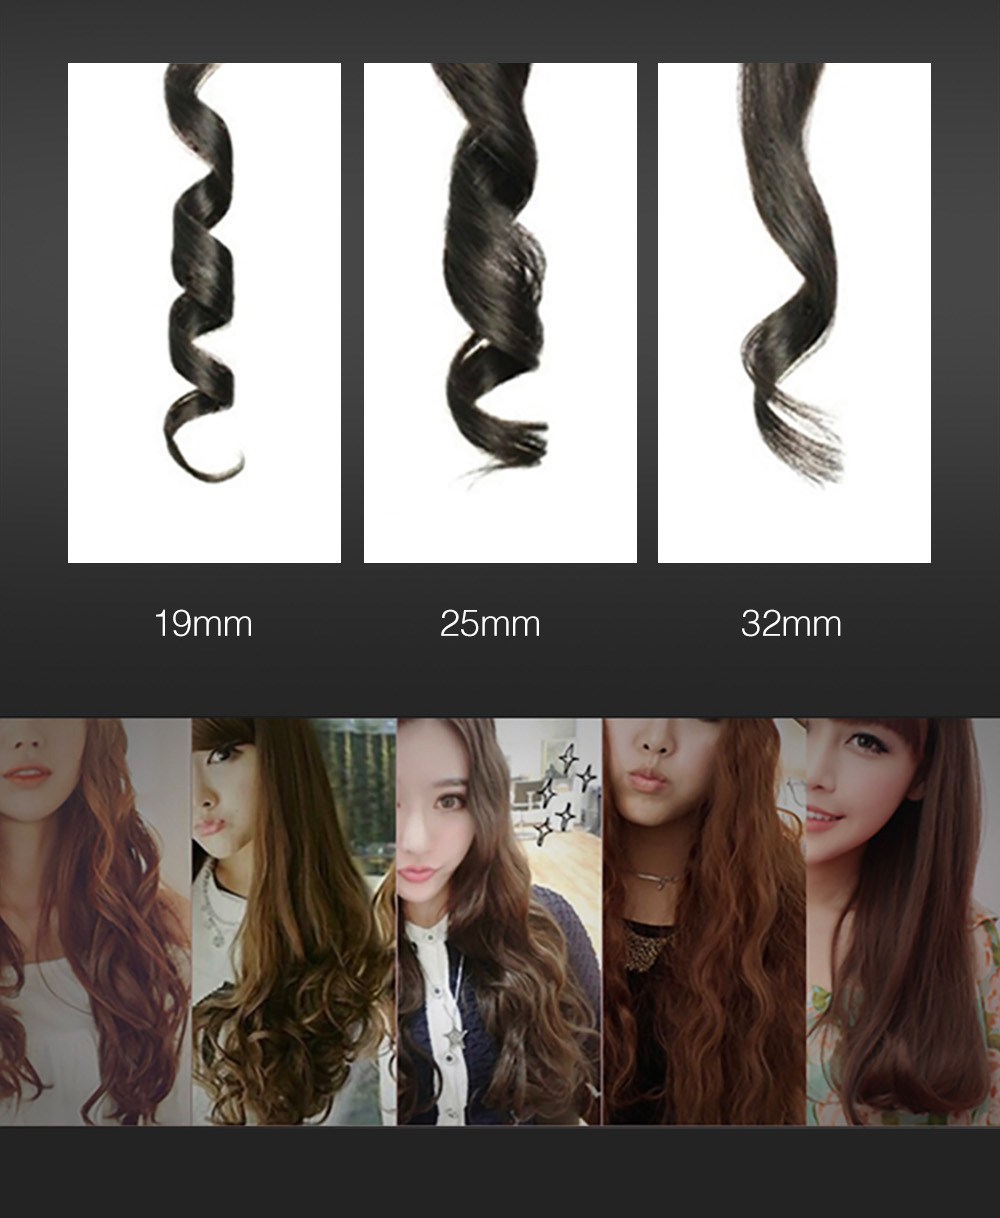 hair curler, hair straightener, curling hair straightener, hair curling straightener